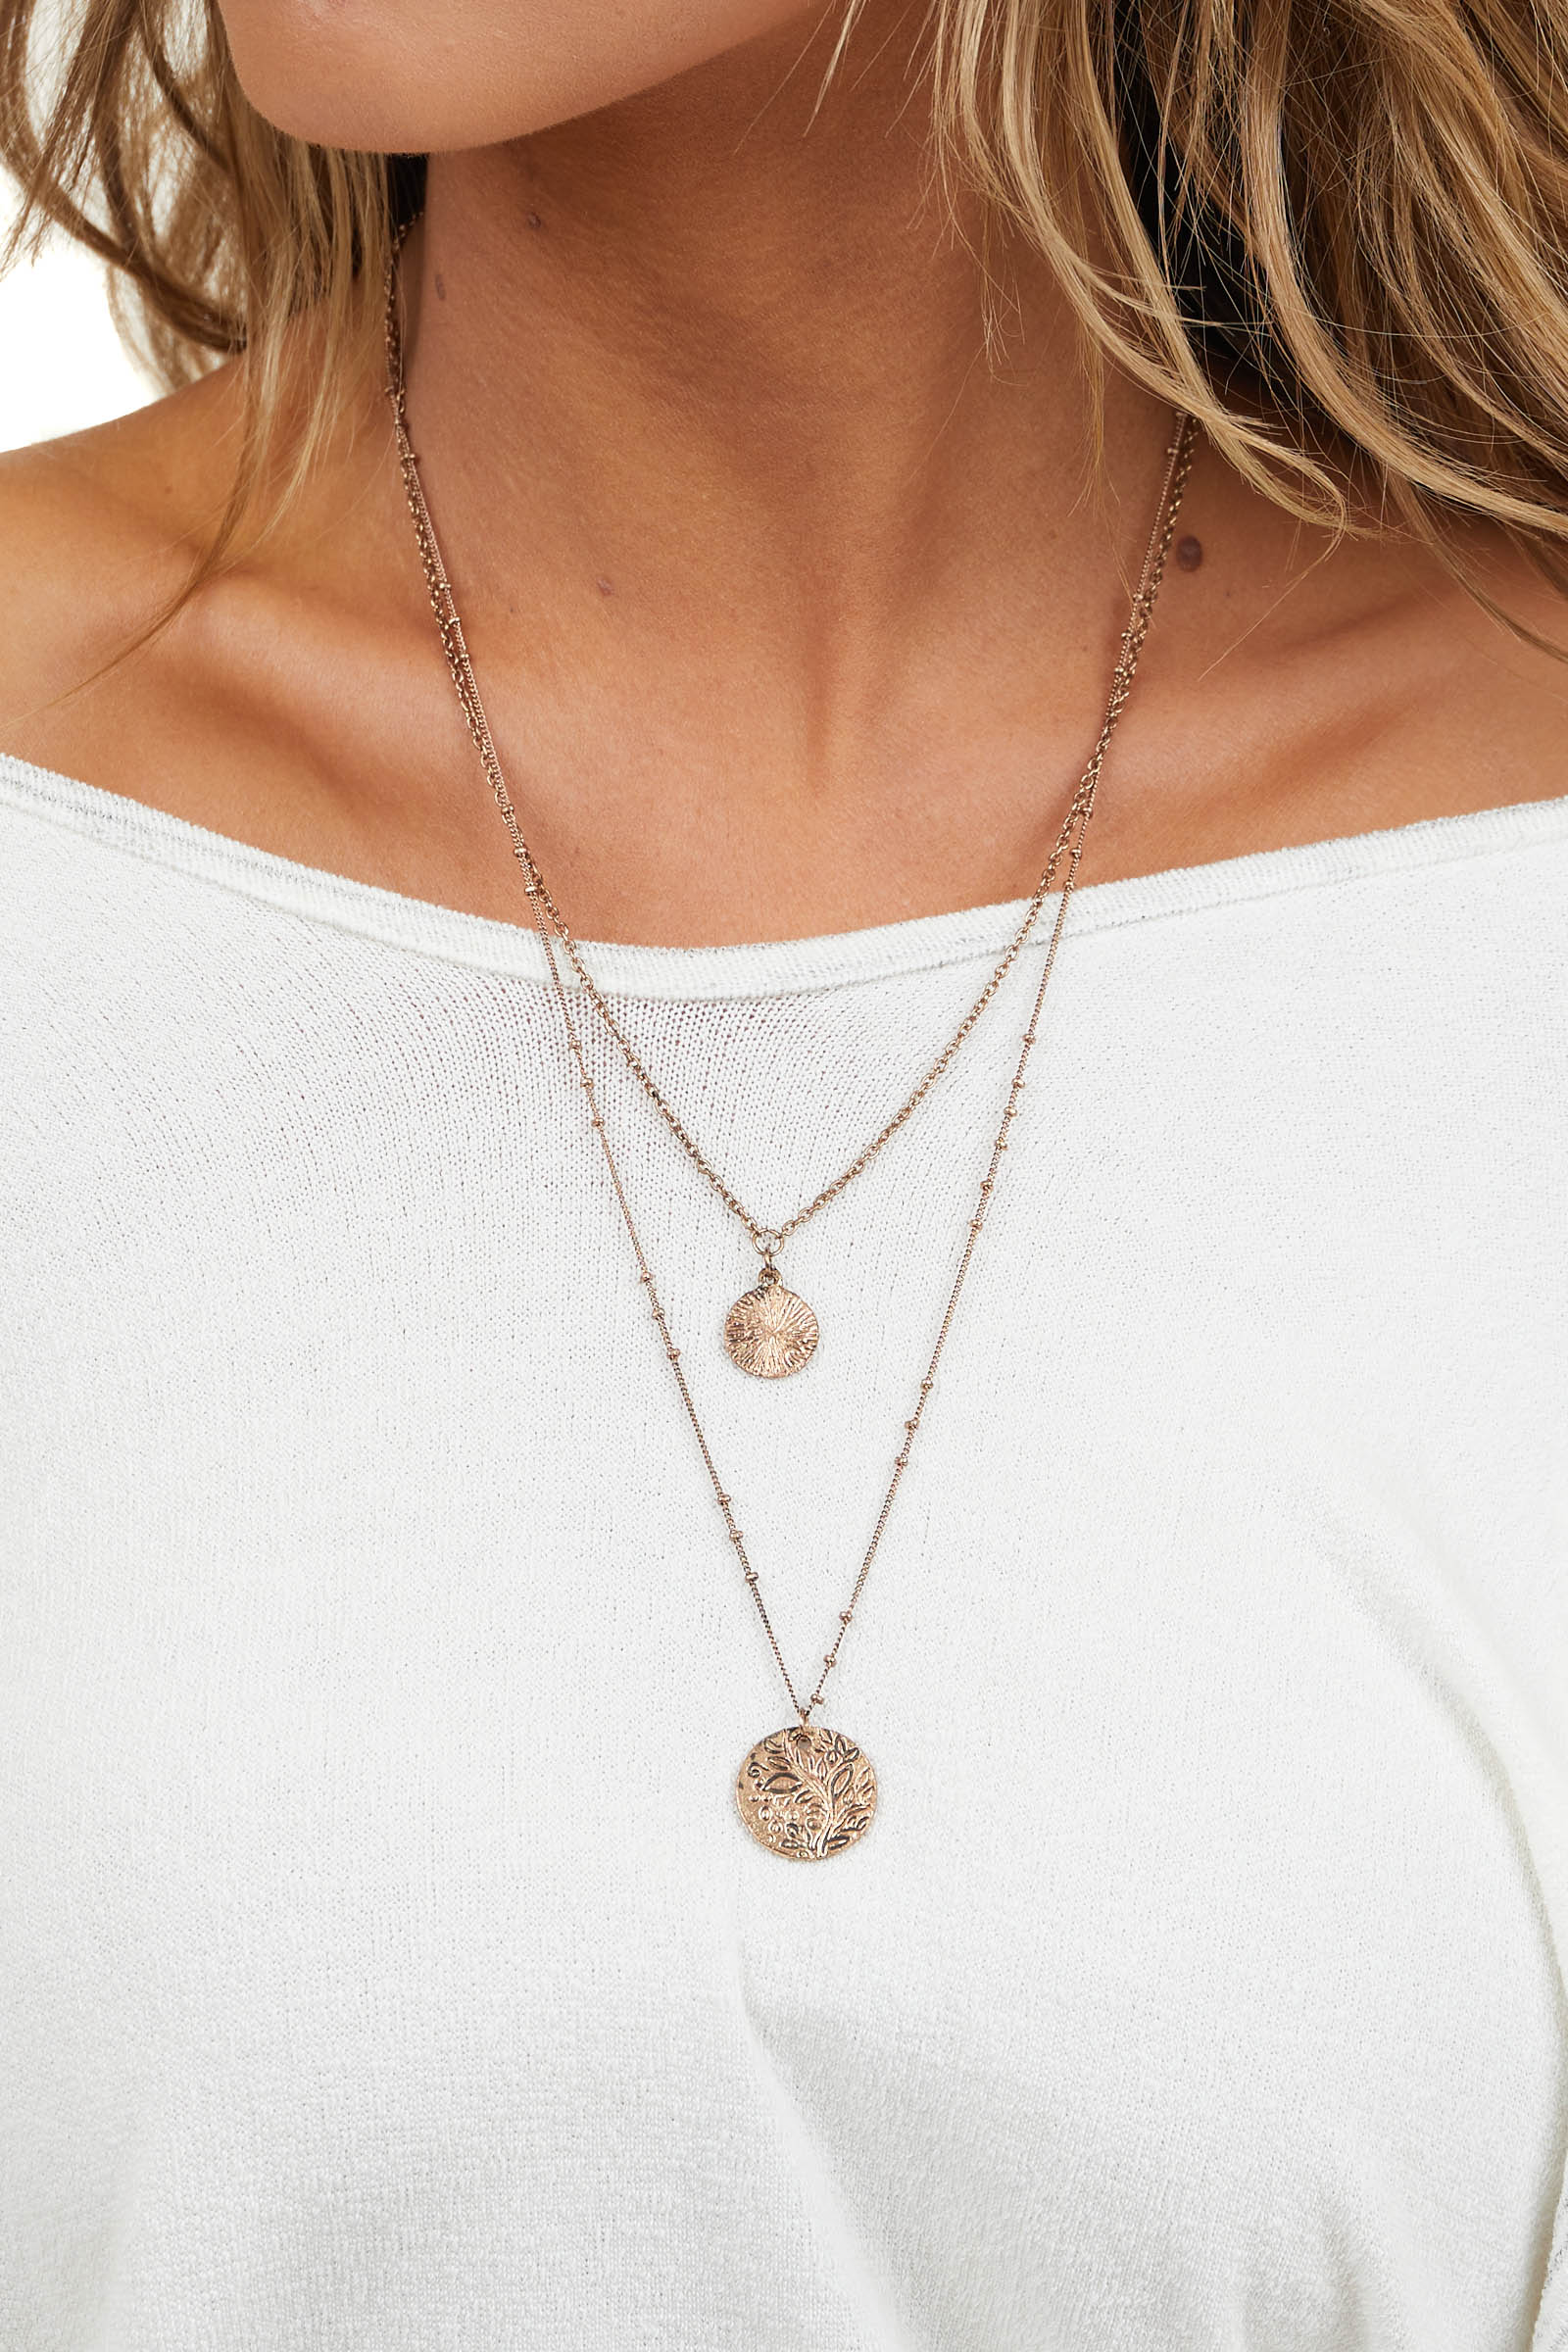 Antiqued Rose Gold Layered Necklace with Floral Circle Charm